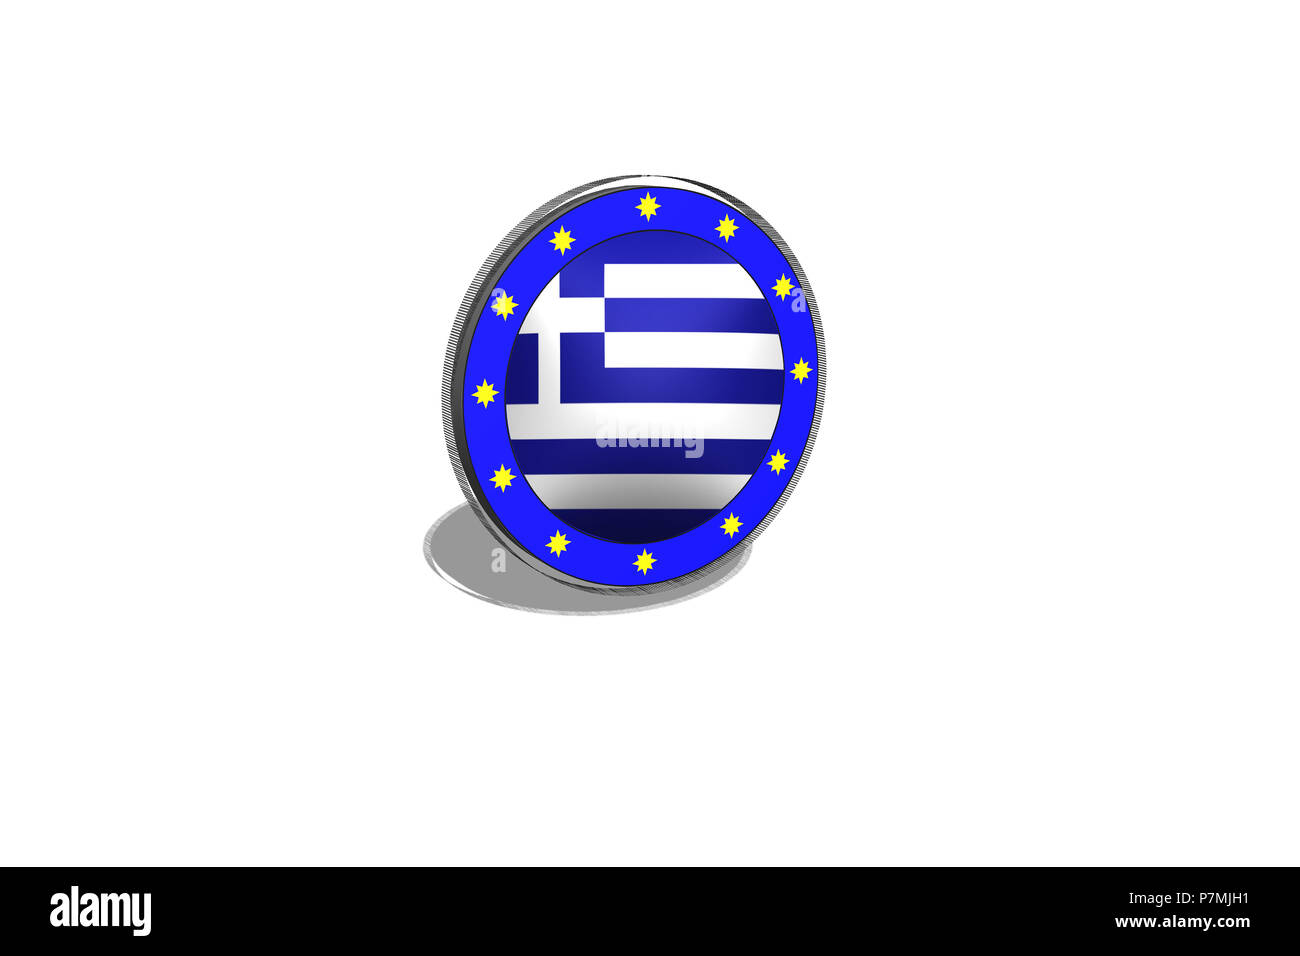 EU button on a button with Greek flag. 3D image - Illustration. - Stock Image